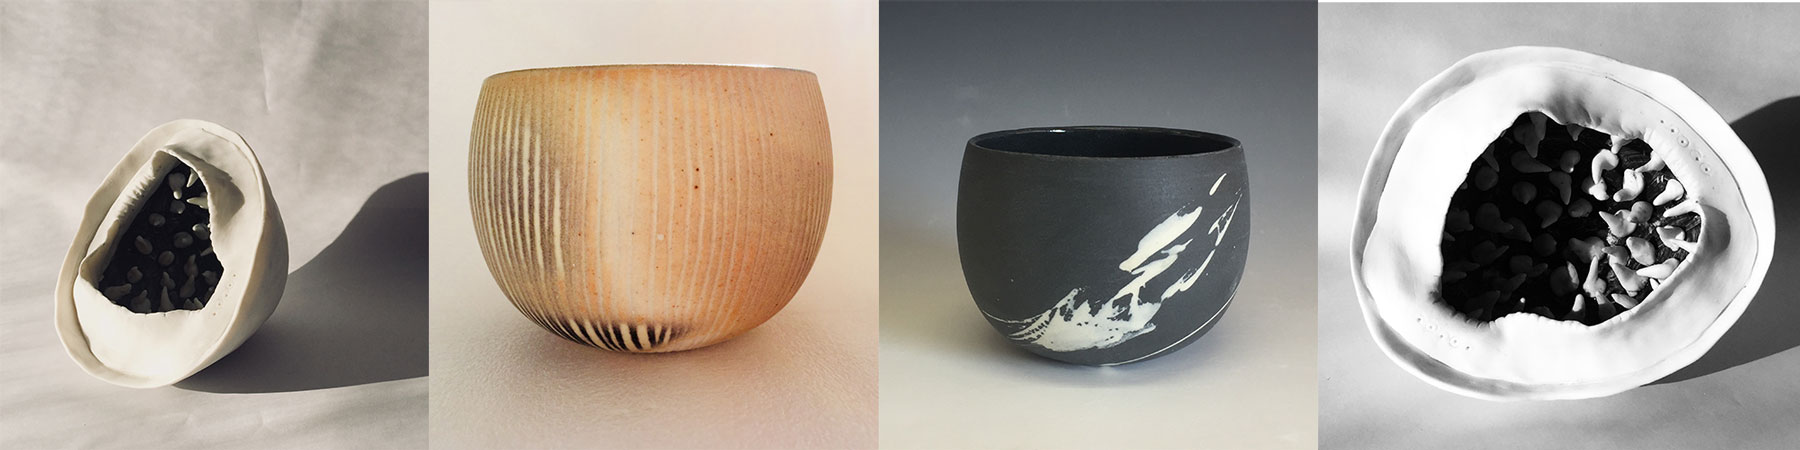 CUPS: COLOUR AND MARK MAKING ON A CERAMIC CUP WITH JENNIFER EVERETT